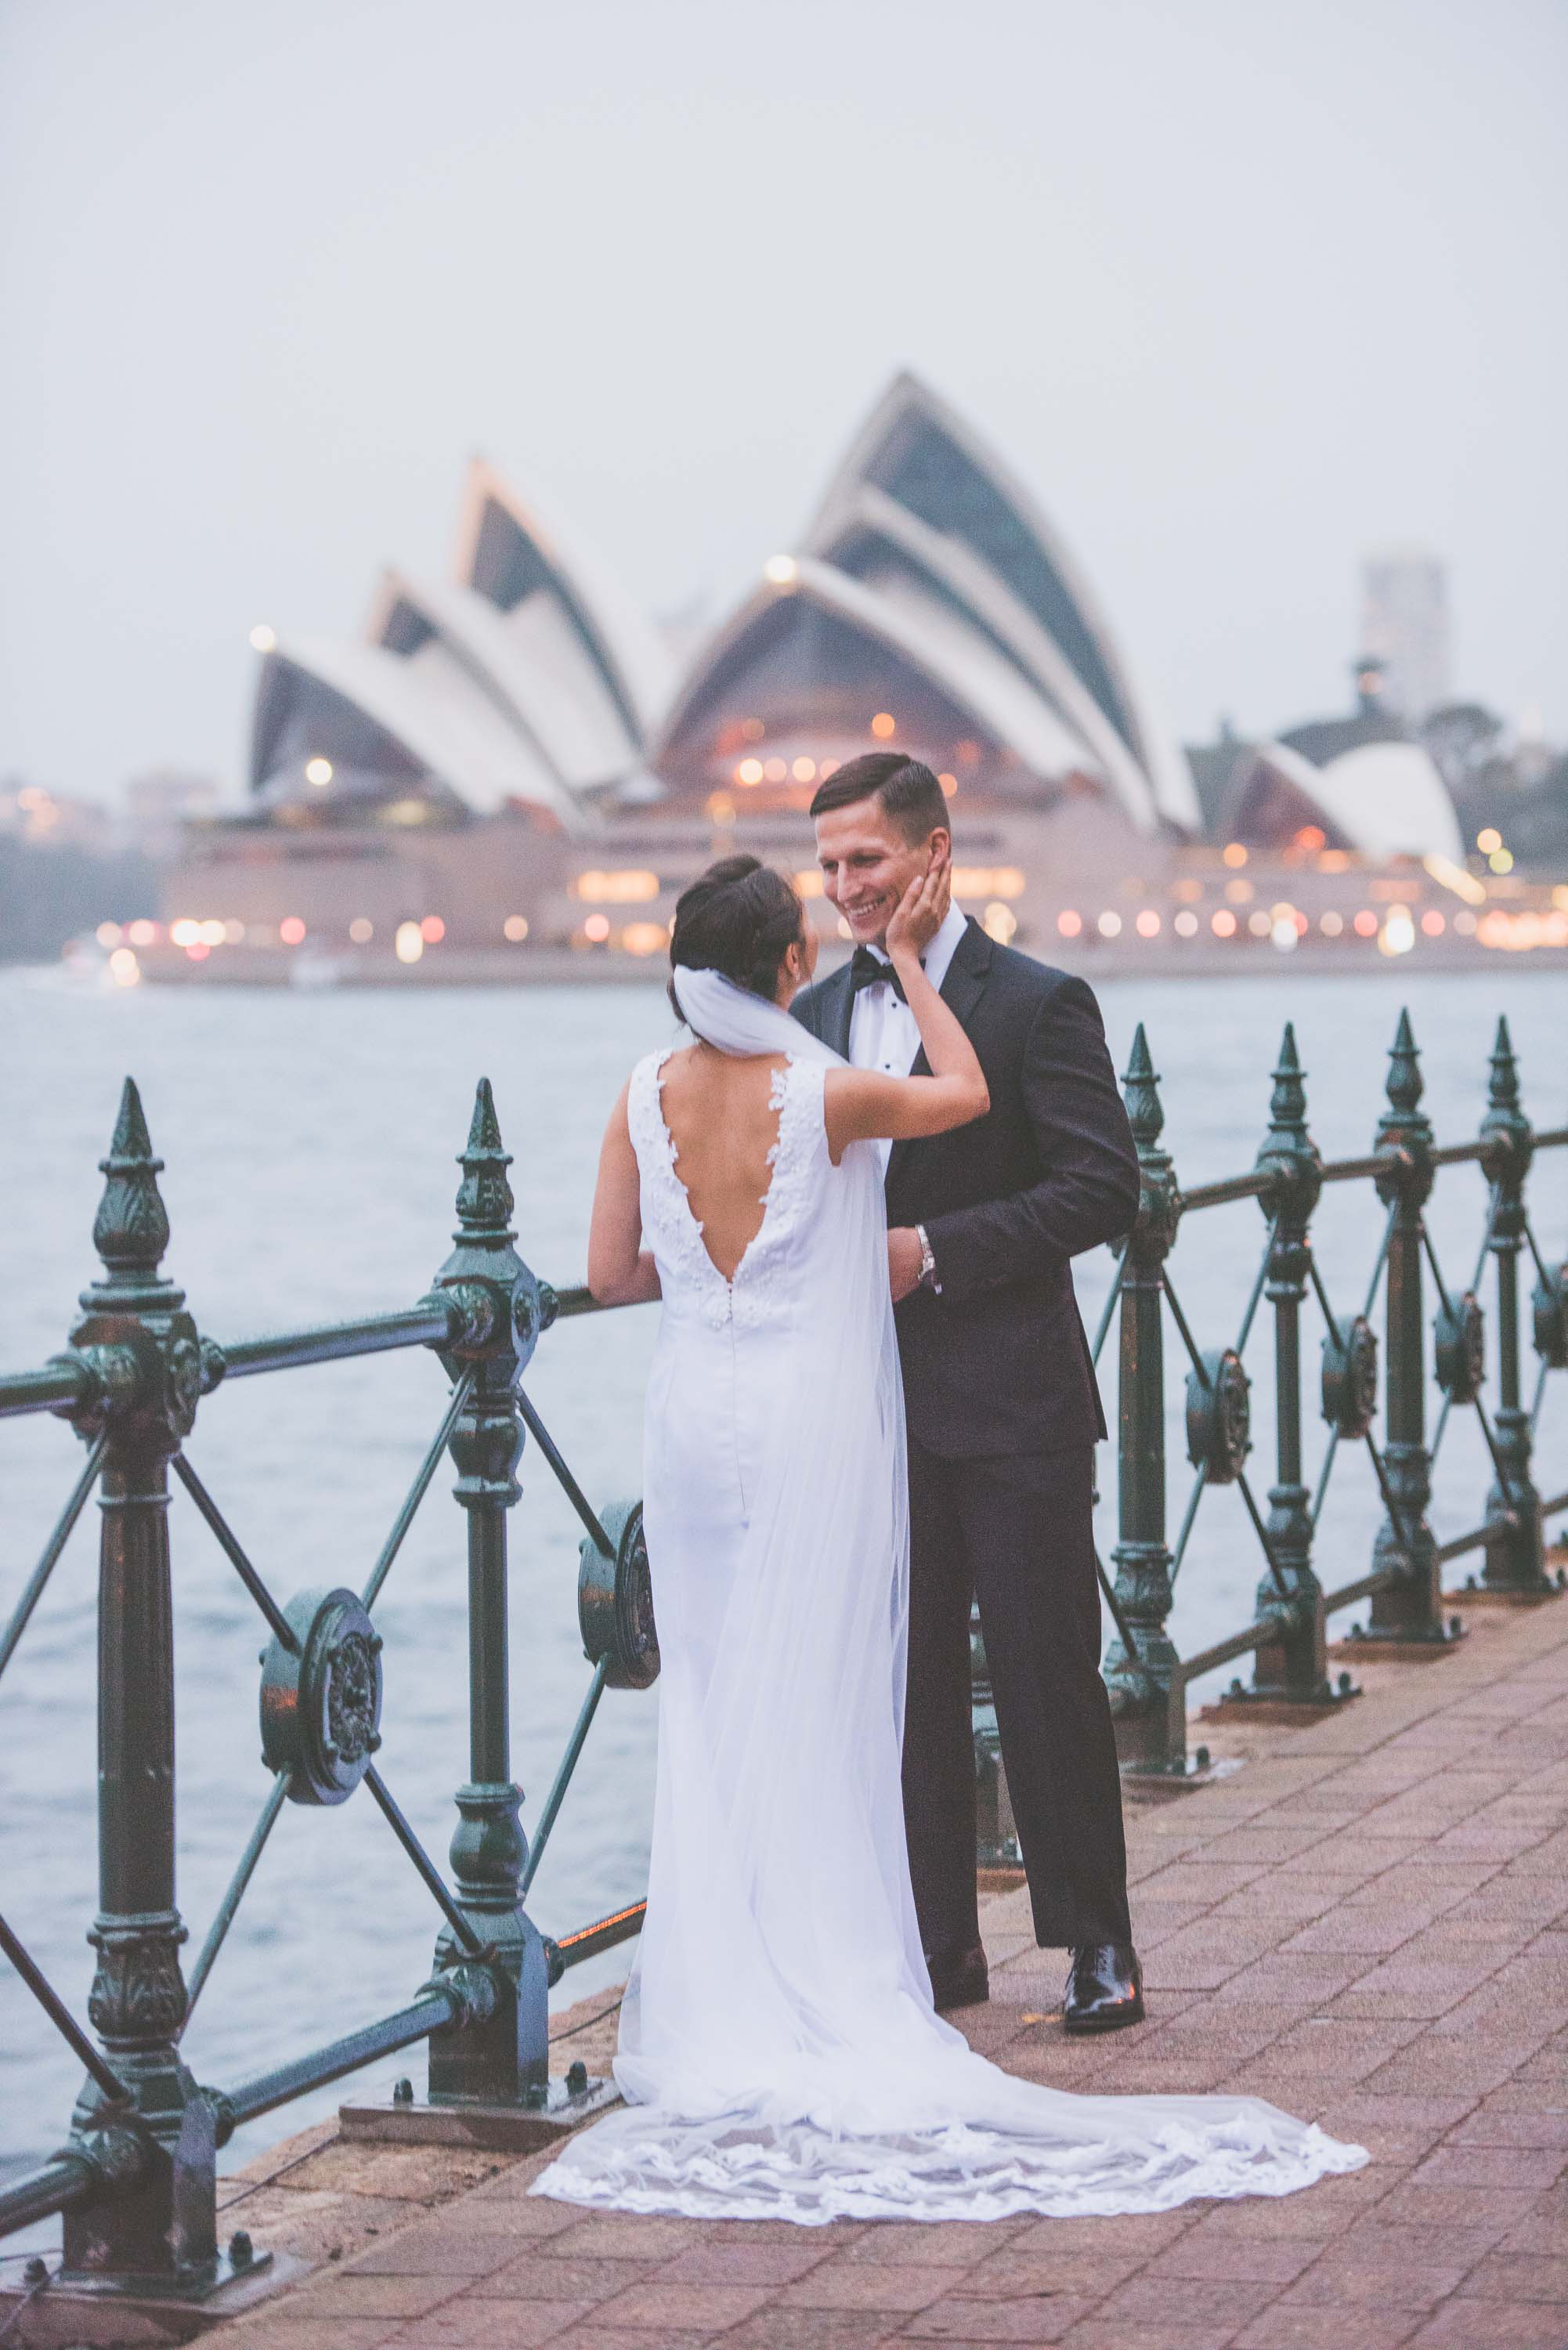 Drew and Purevsuven wedding - in front of Opera House - Photo credit Nicola Bailey.jpg